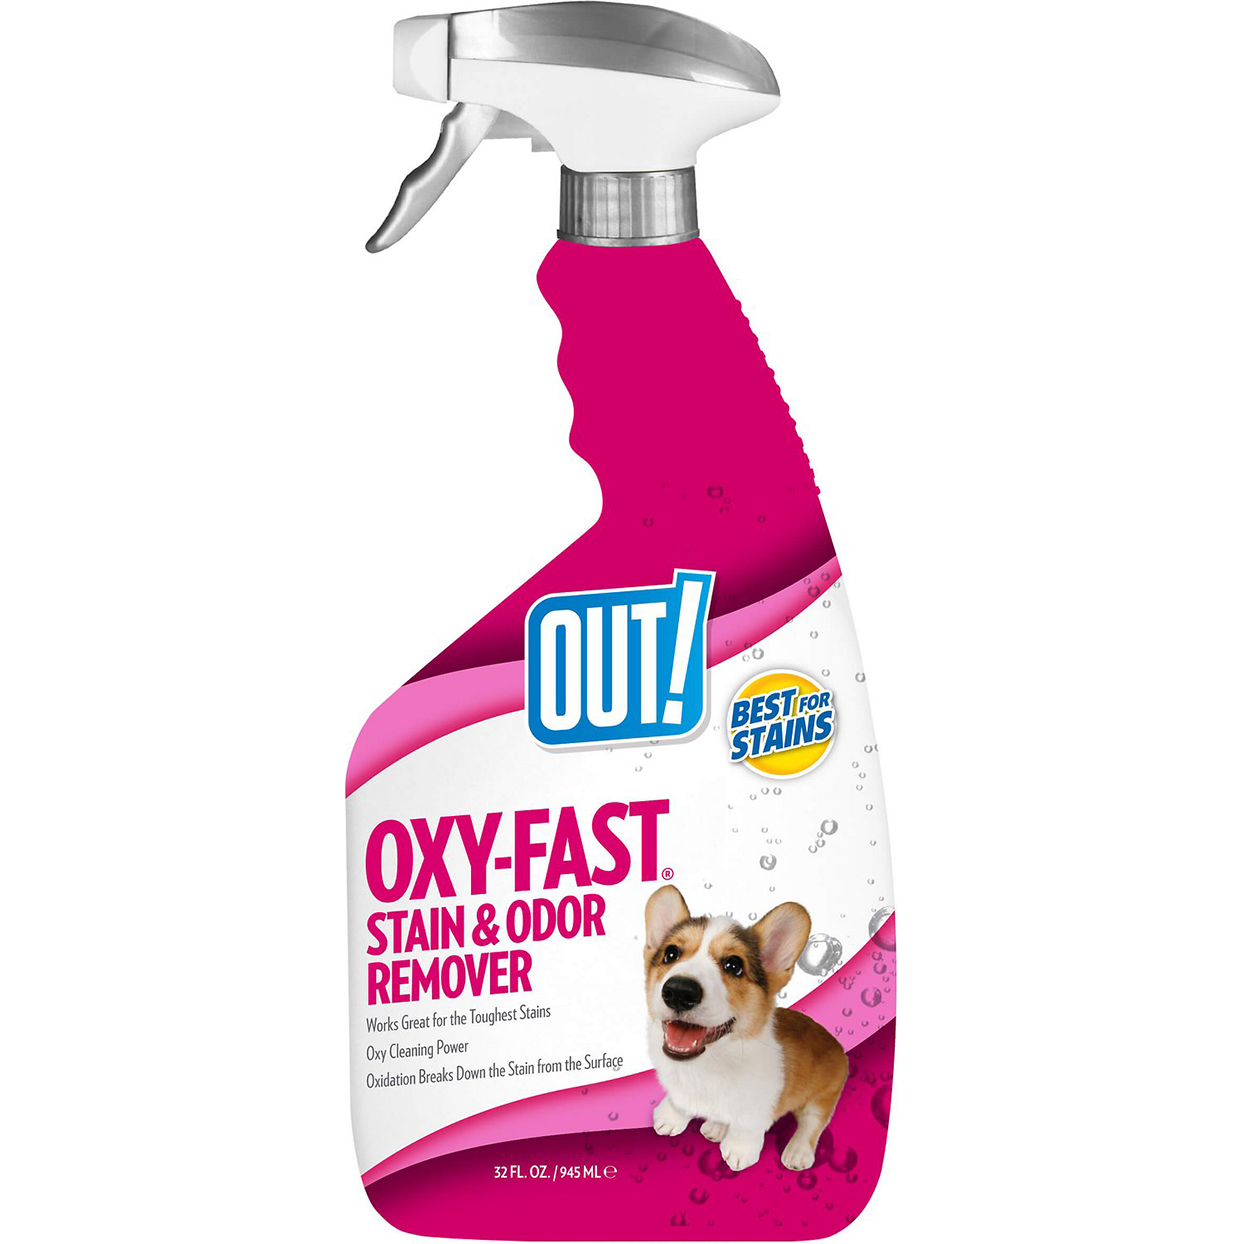 Out pet stain remover